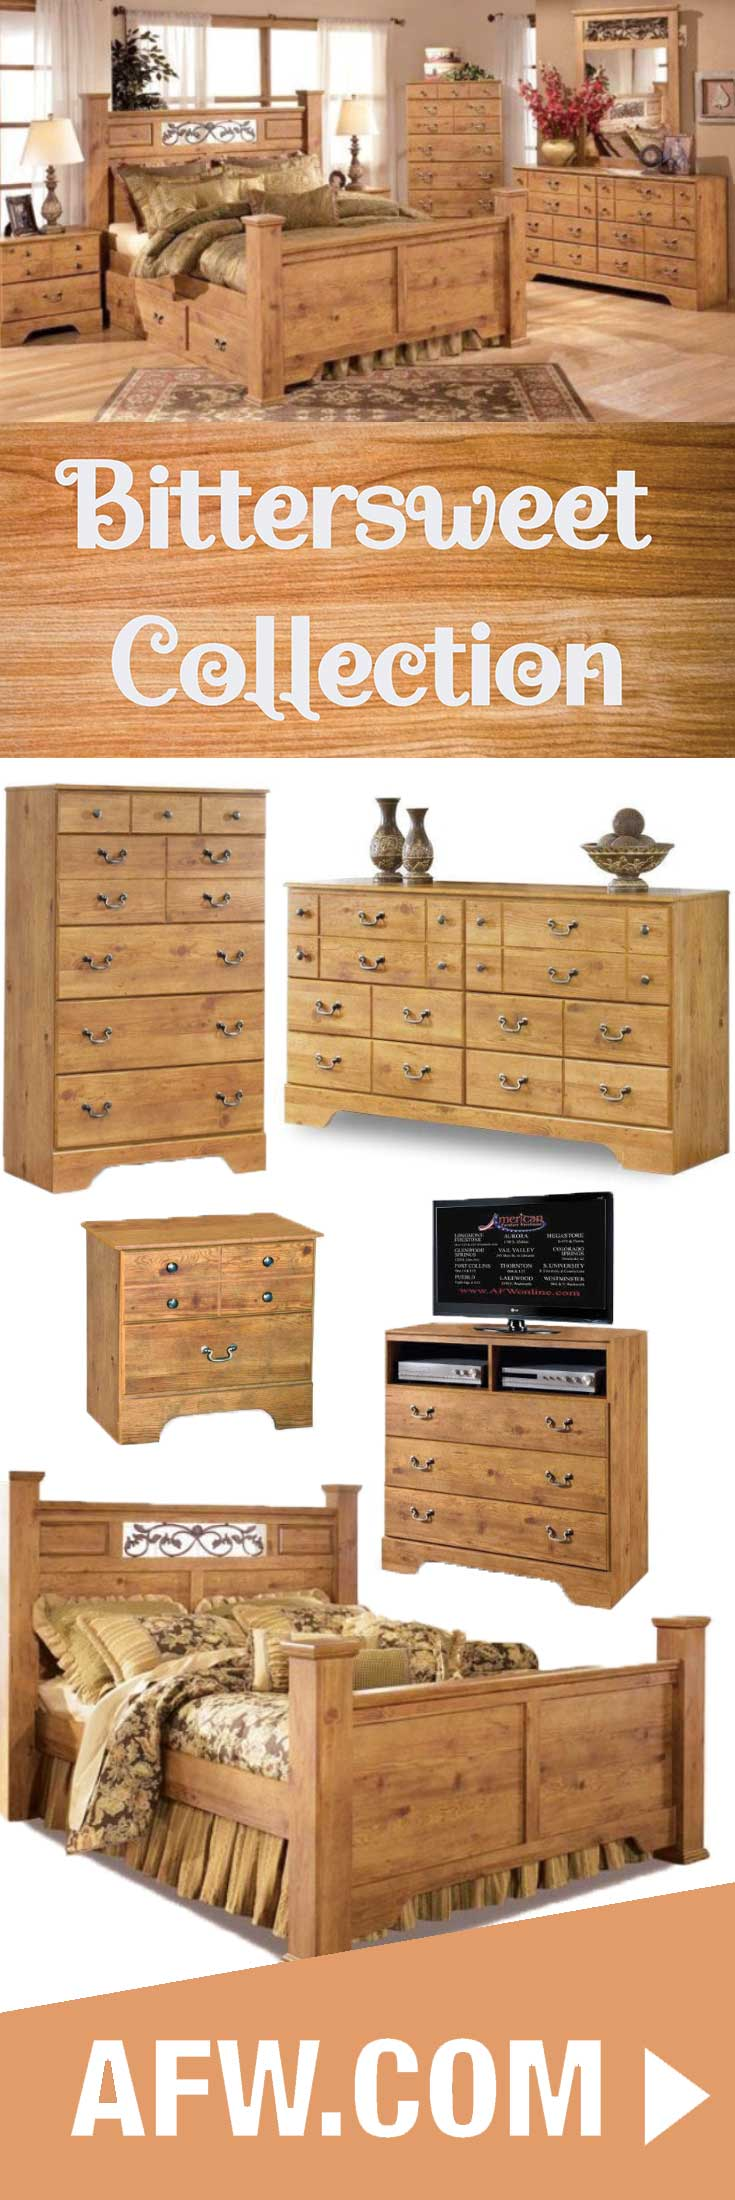 Relax In Rustic Comfort With The Bittersweet 5 Piece Bedroom Set From The  Bittersweet Collection By